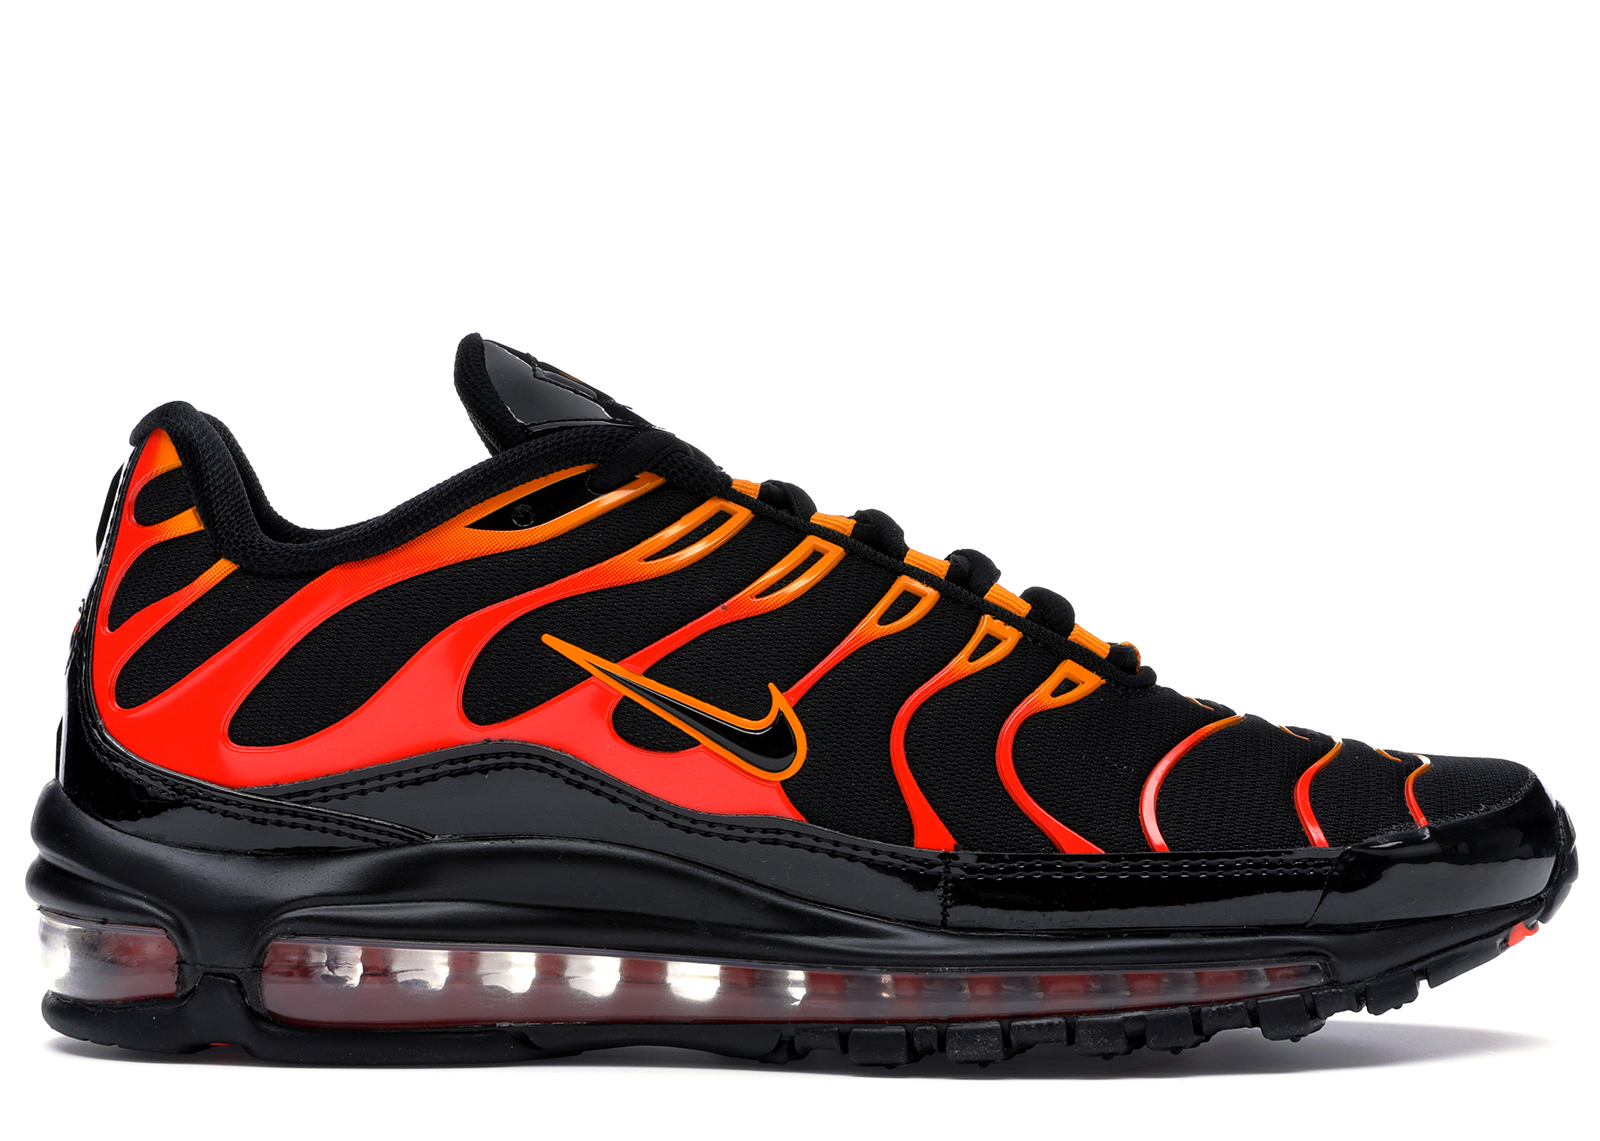 Air Max 97 Plus Black Shock Orange